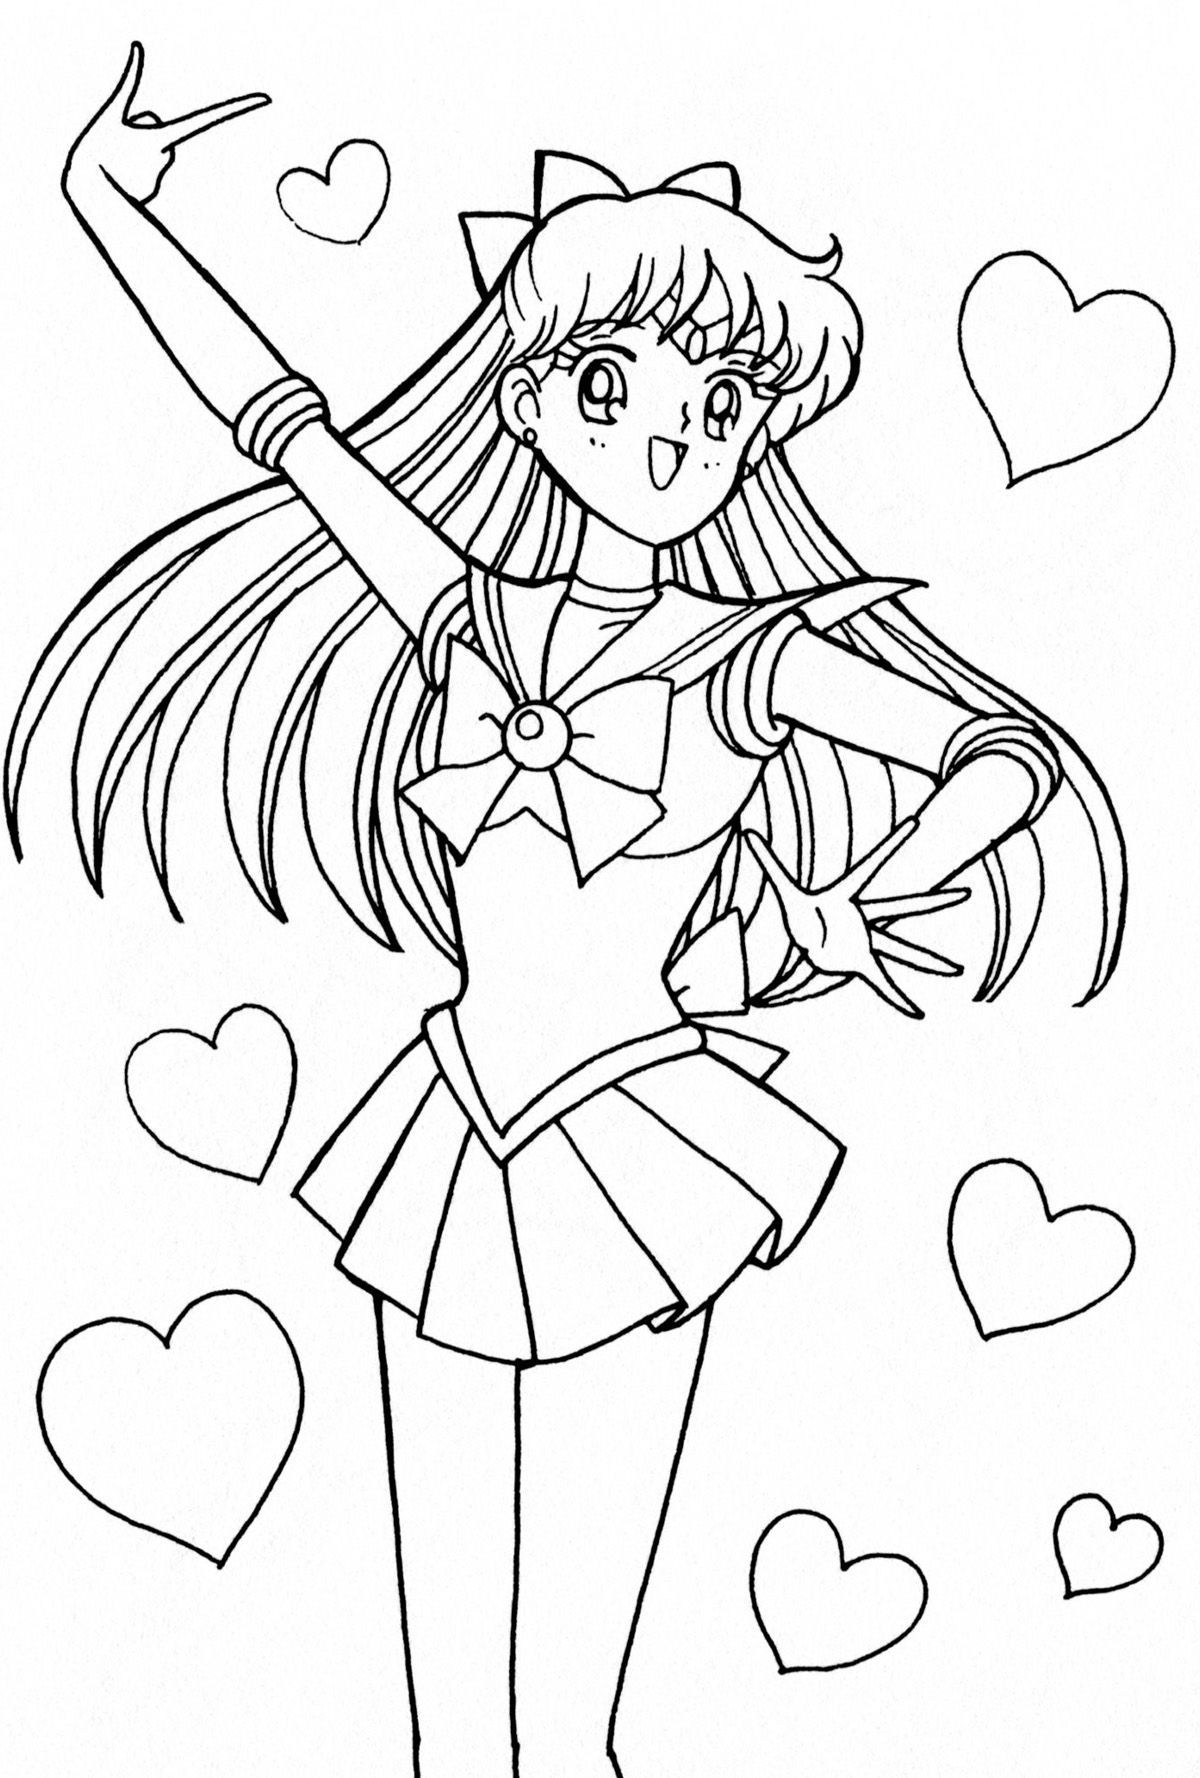 venus coloring pages venus coloring page learning how to read venus pages coloring